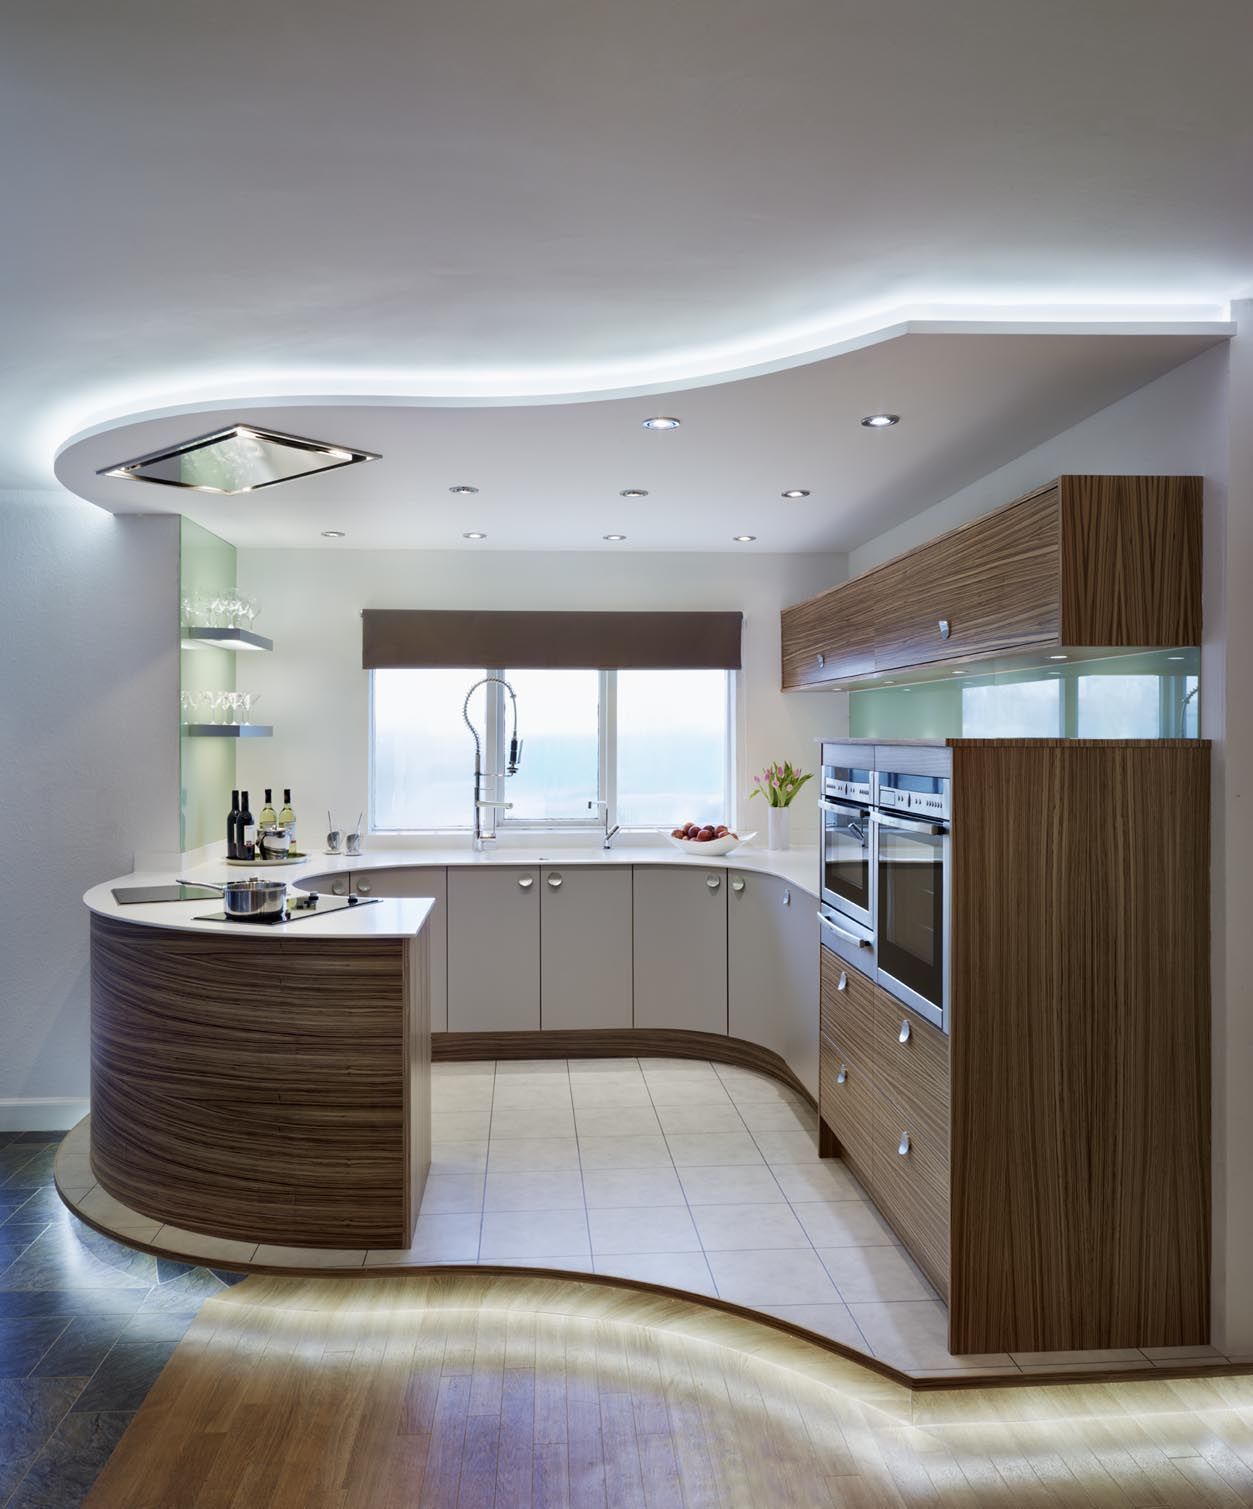 Contemporary Kitchen Design With Curve Wooden Kitchen Cabinet And Magnificent Kitchen Designs Contemporary Decorating Inspiration